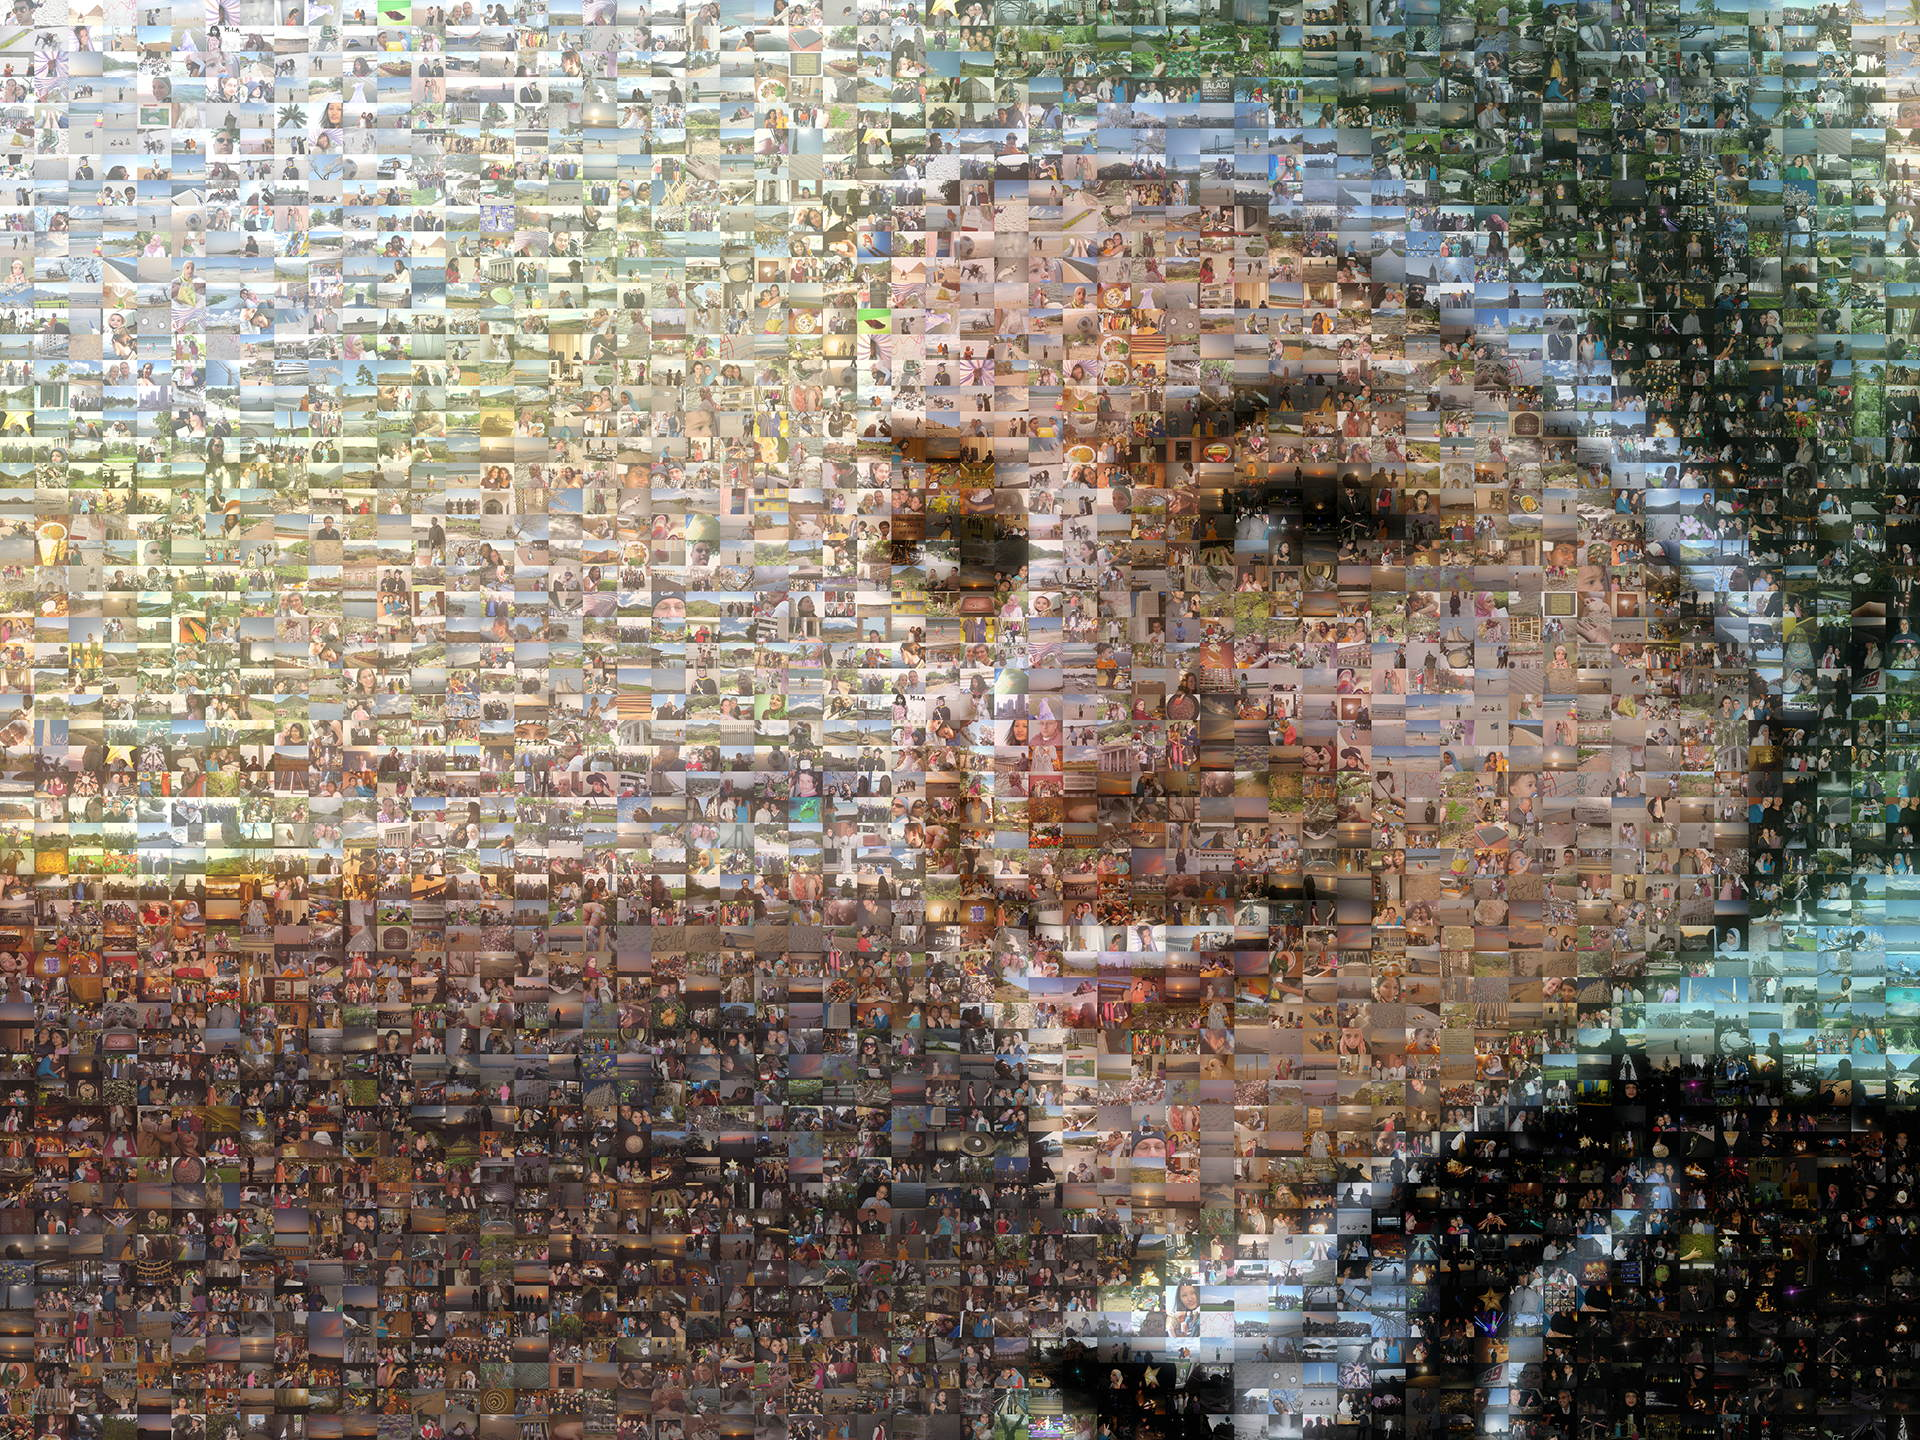 photo mosaic created using 3,061 user submitted photos